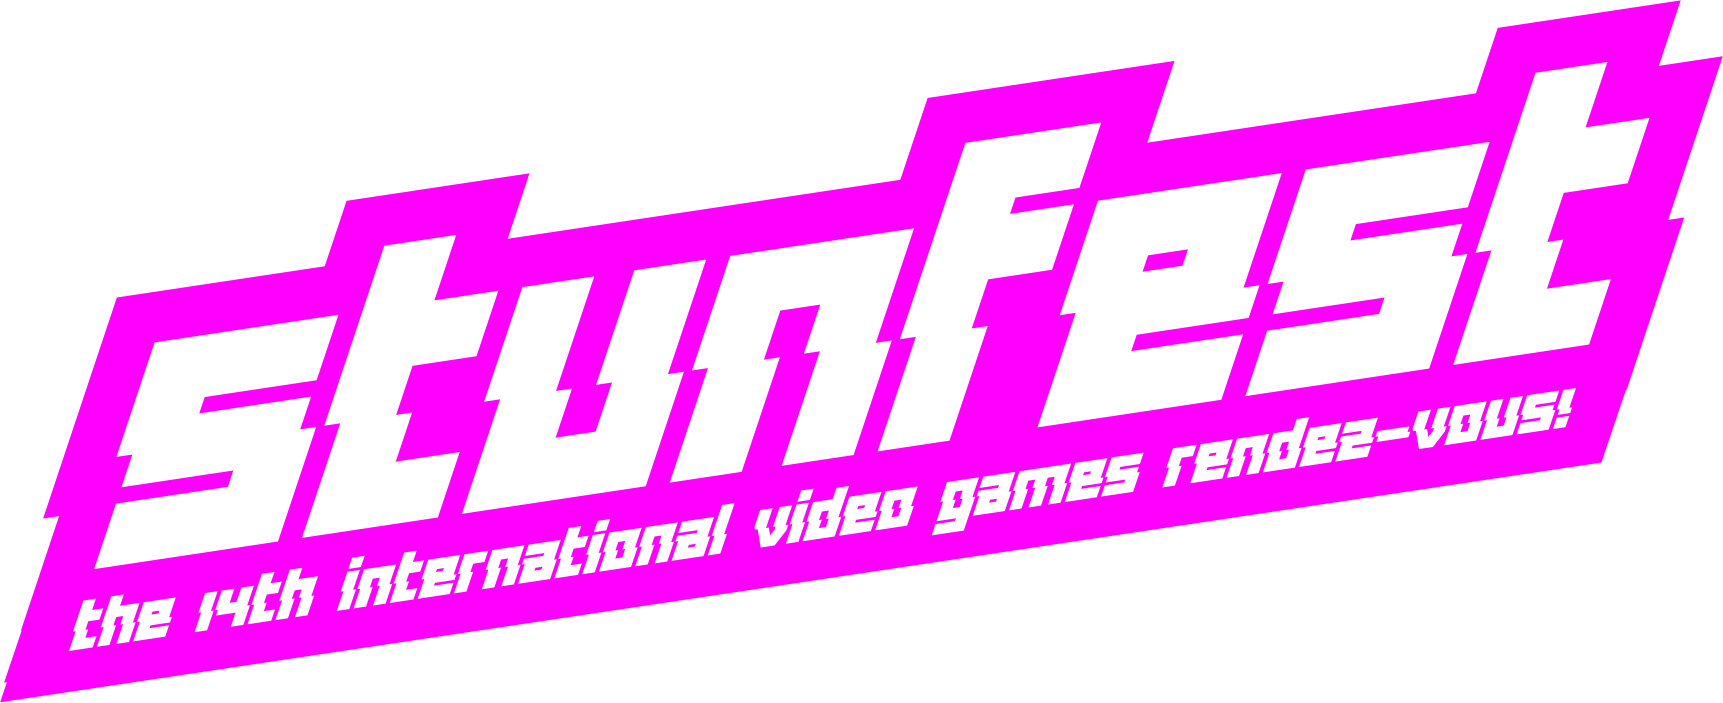 (Photos) Albums des different events Windjammers Stunfest-2018-logo_1723x703